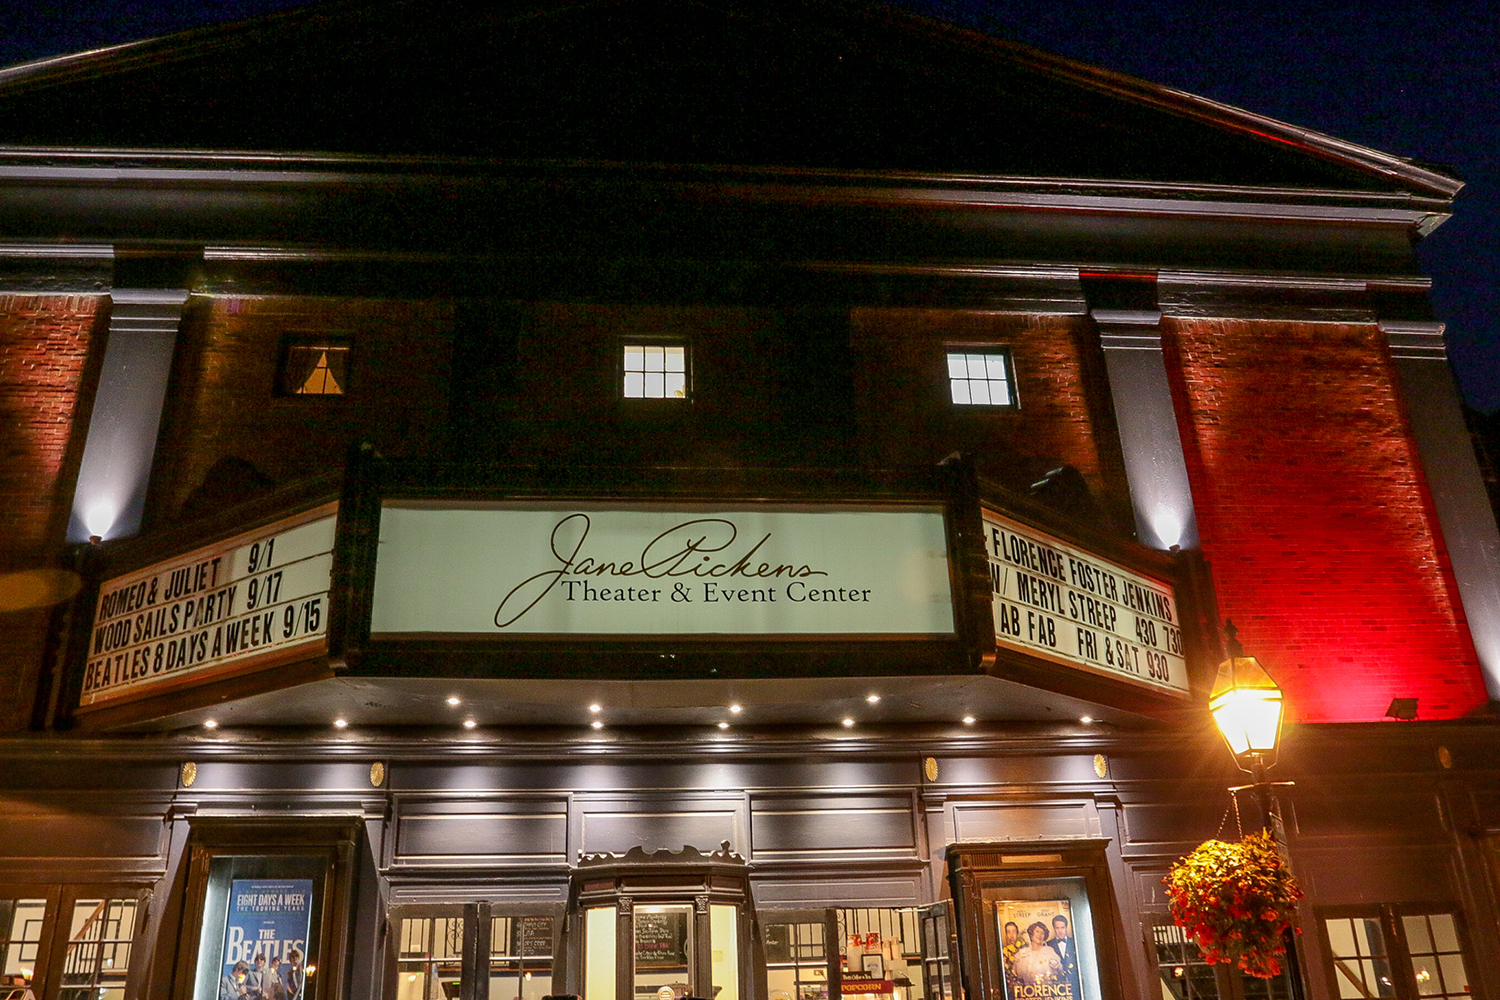 jane pickens theater, photo credit: discover newport